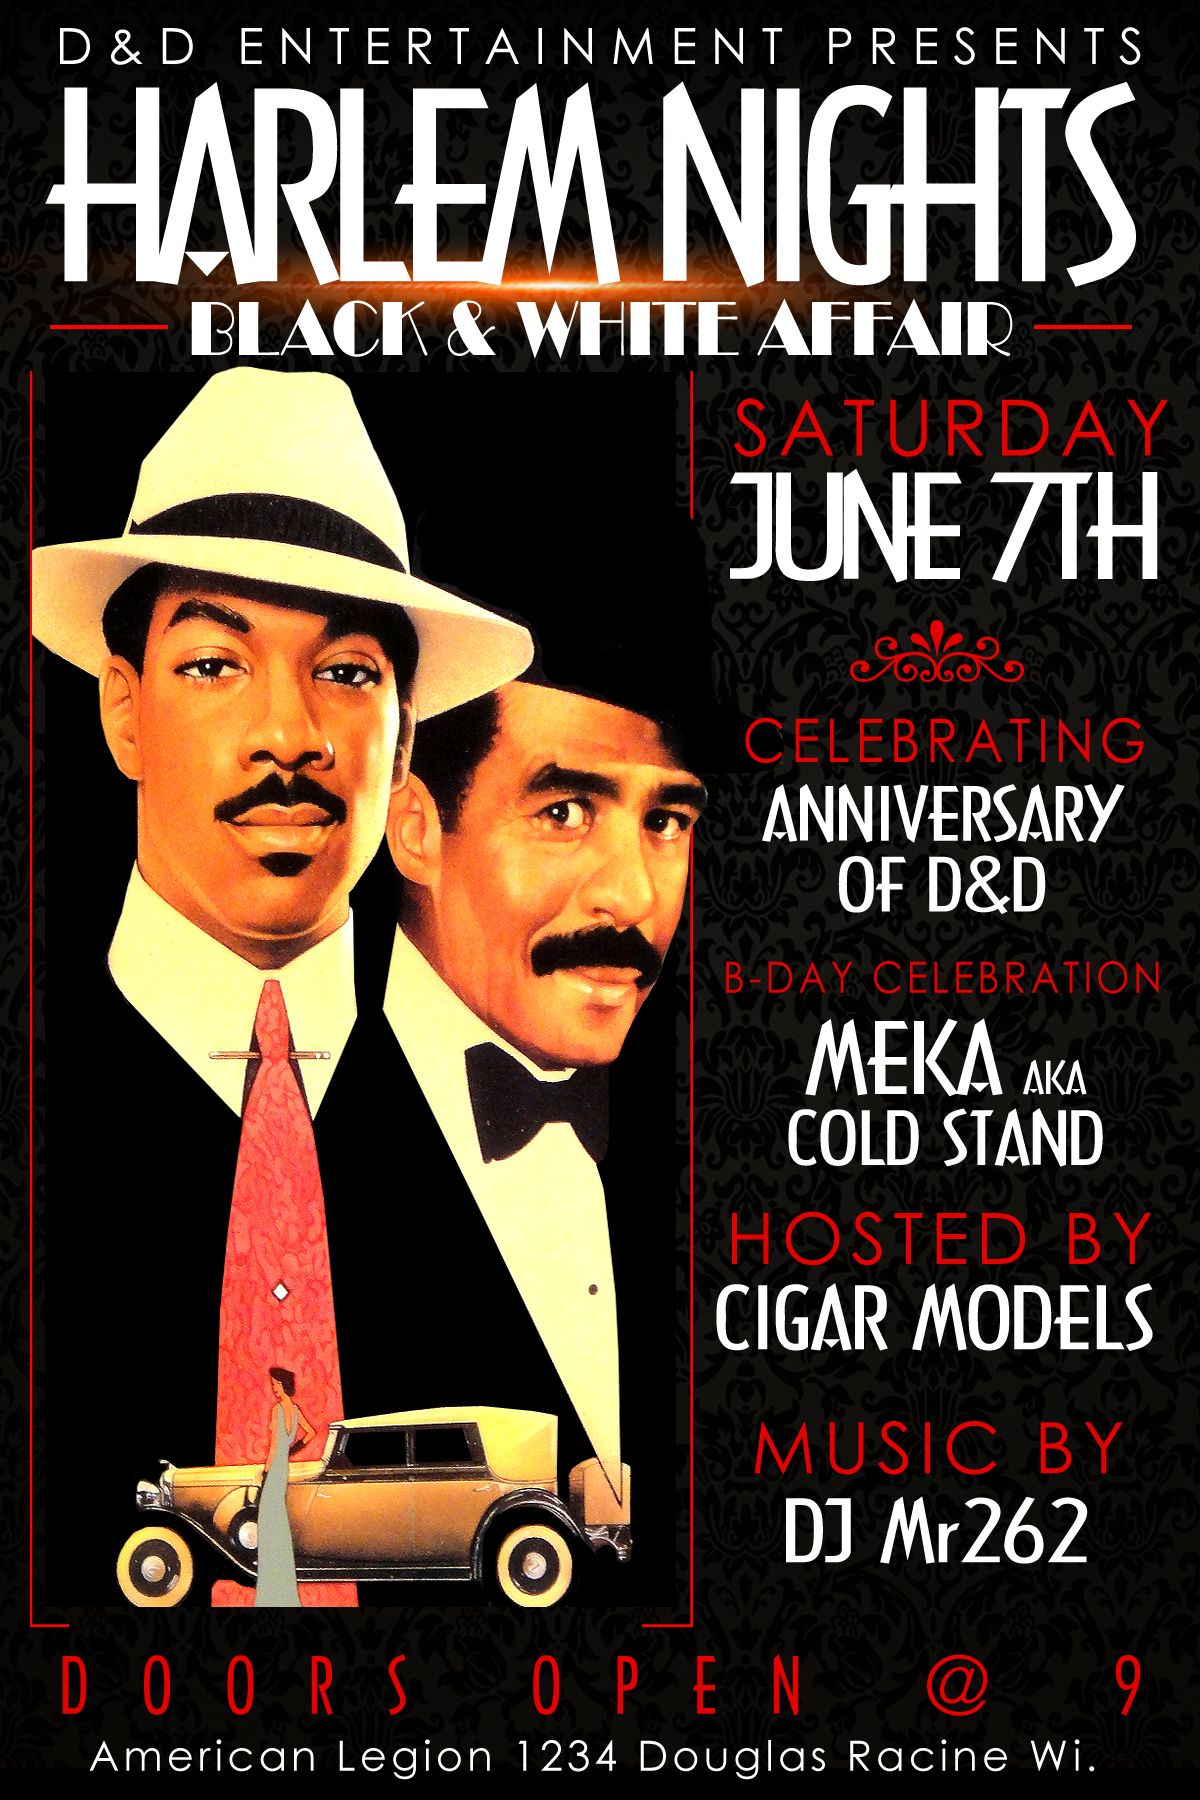 Harlem Night Flyer Darker Harlem Nights Flyer Igmm1 Our Flyers